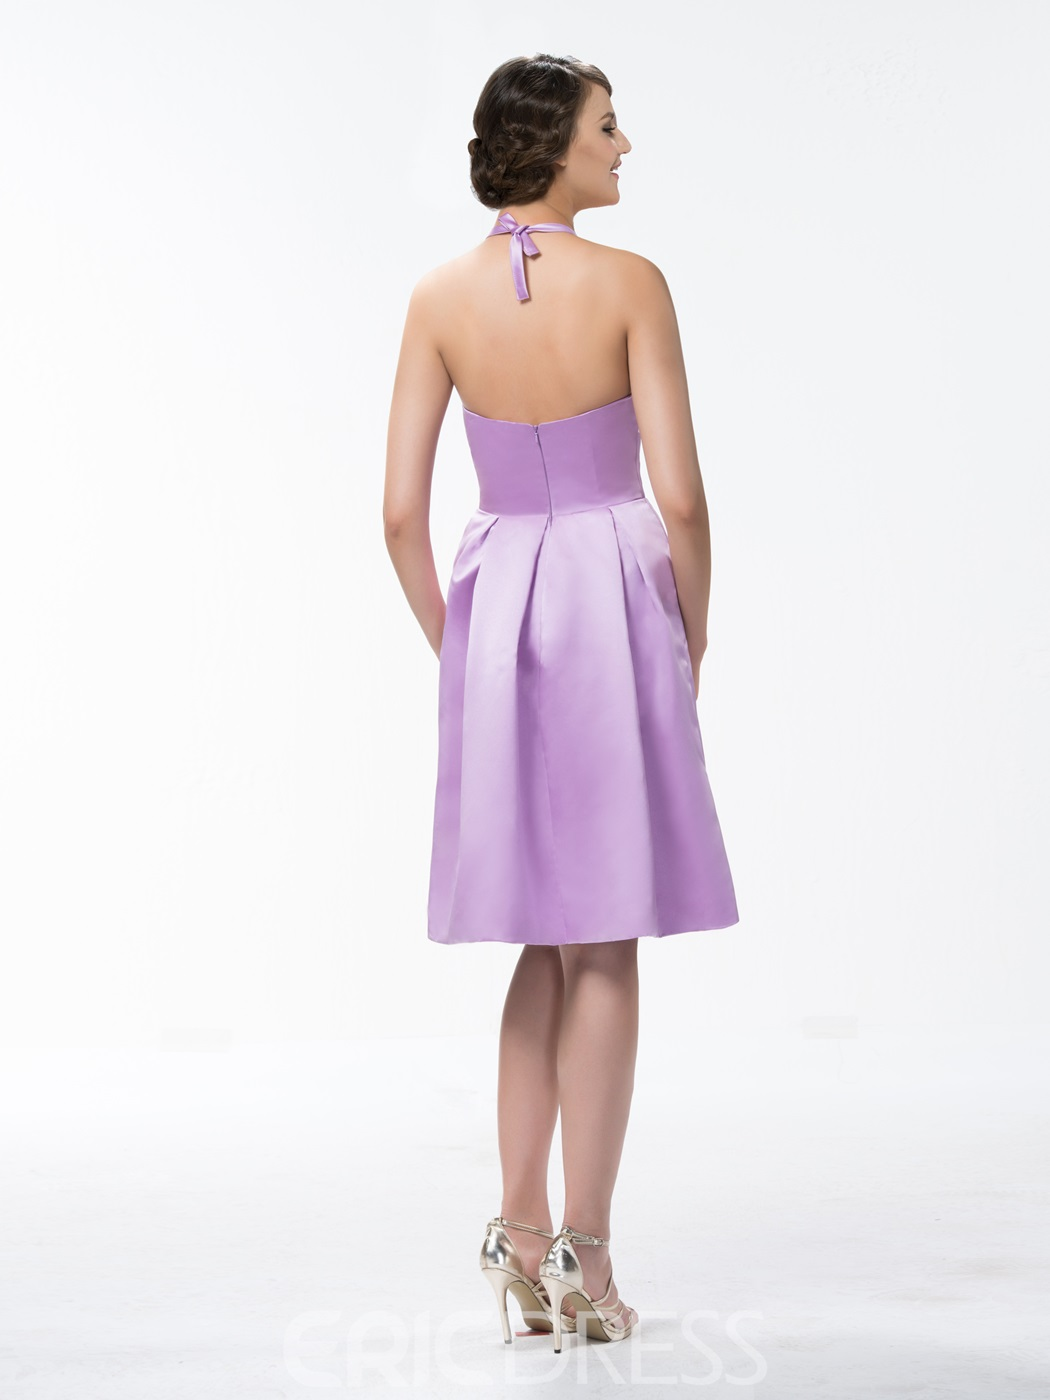 Concise A-Line Halter Knee-Length Zipper-Up Bridesmaid Dress